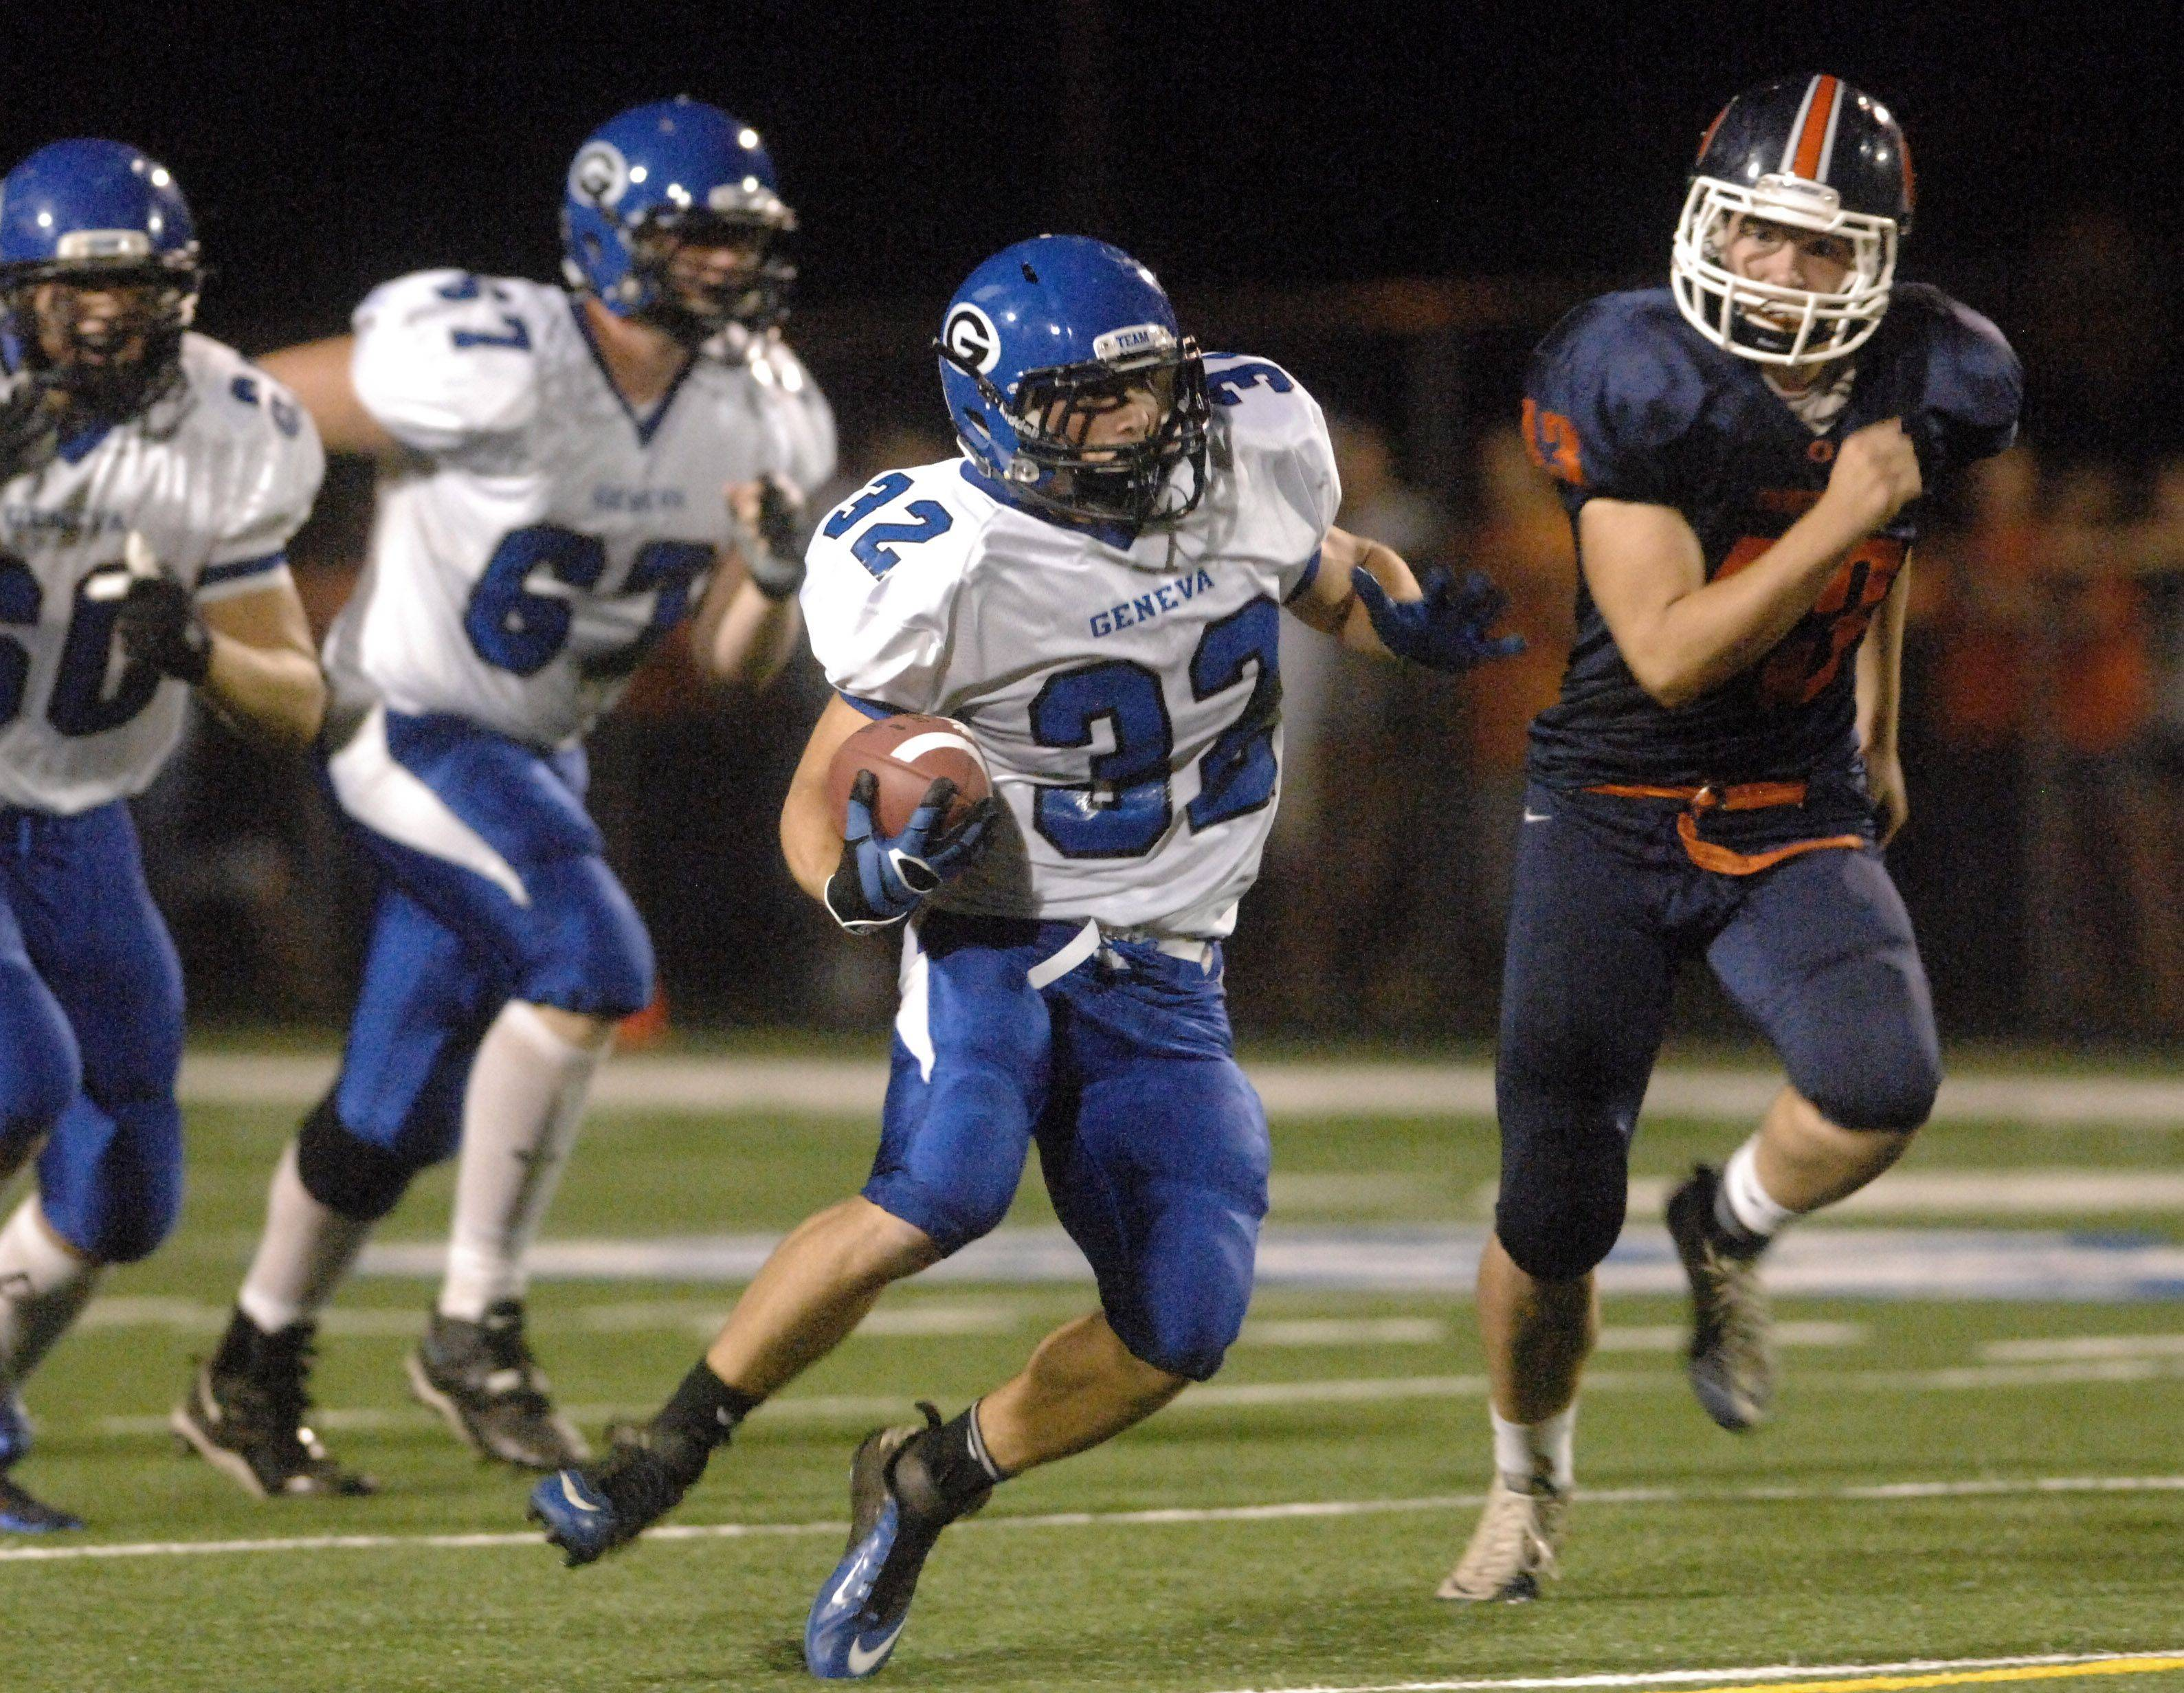 Geneva's Bobby Hess makes a nice gain up the middle against Oswego during Friday's game at Geneva.